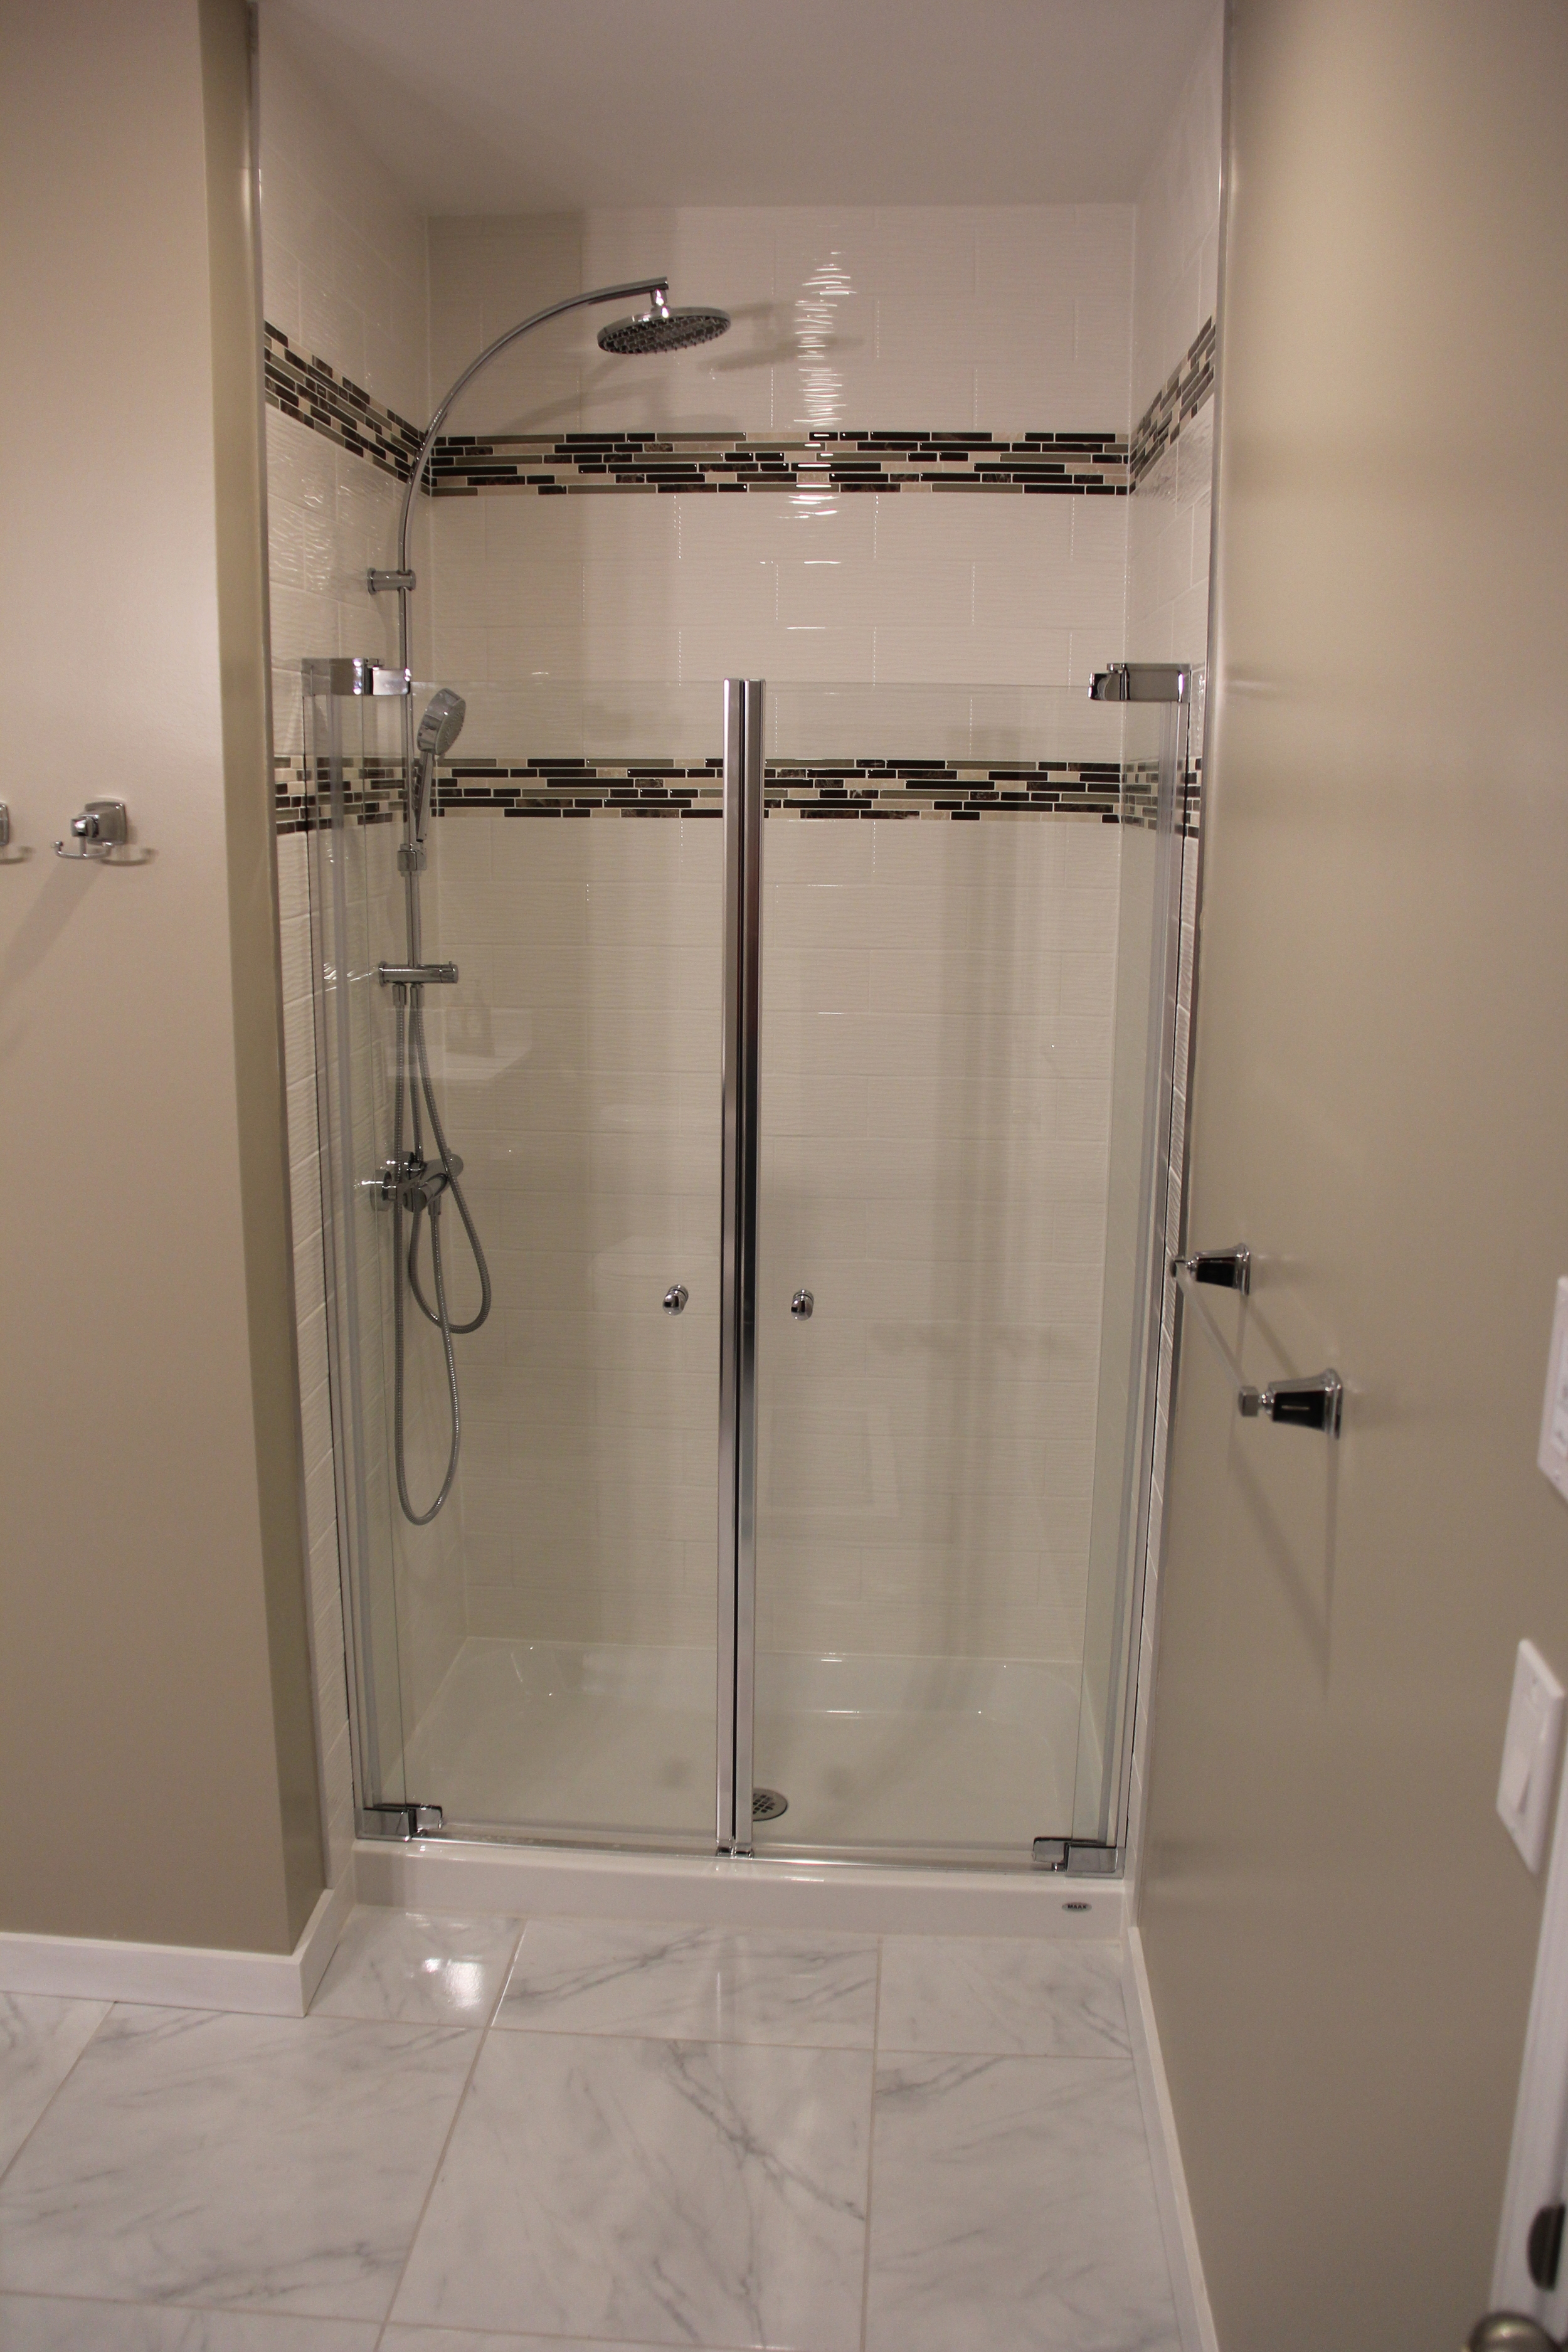 37 1162 Escala Final Pictures with Canon - Shower.JPG